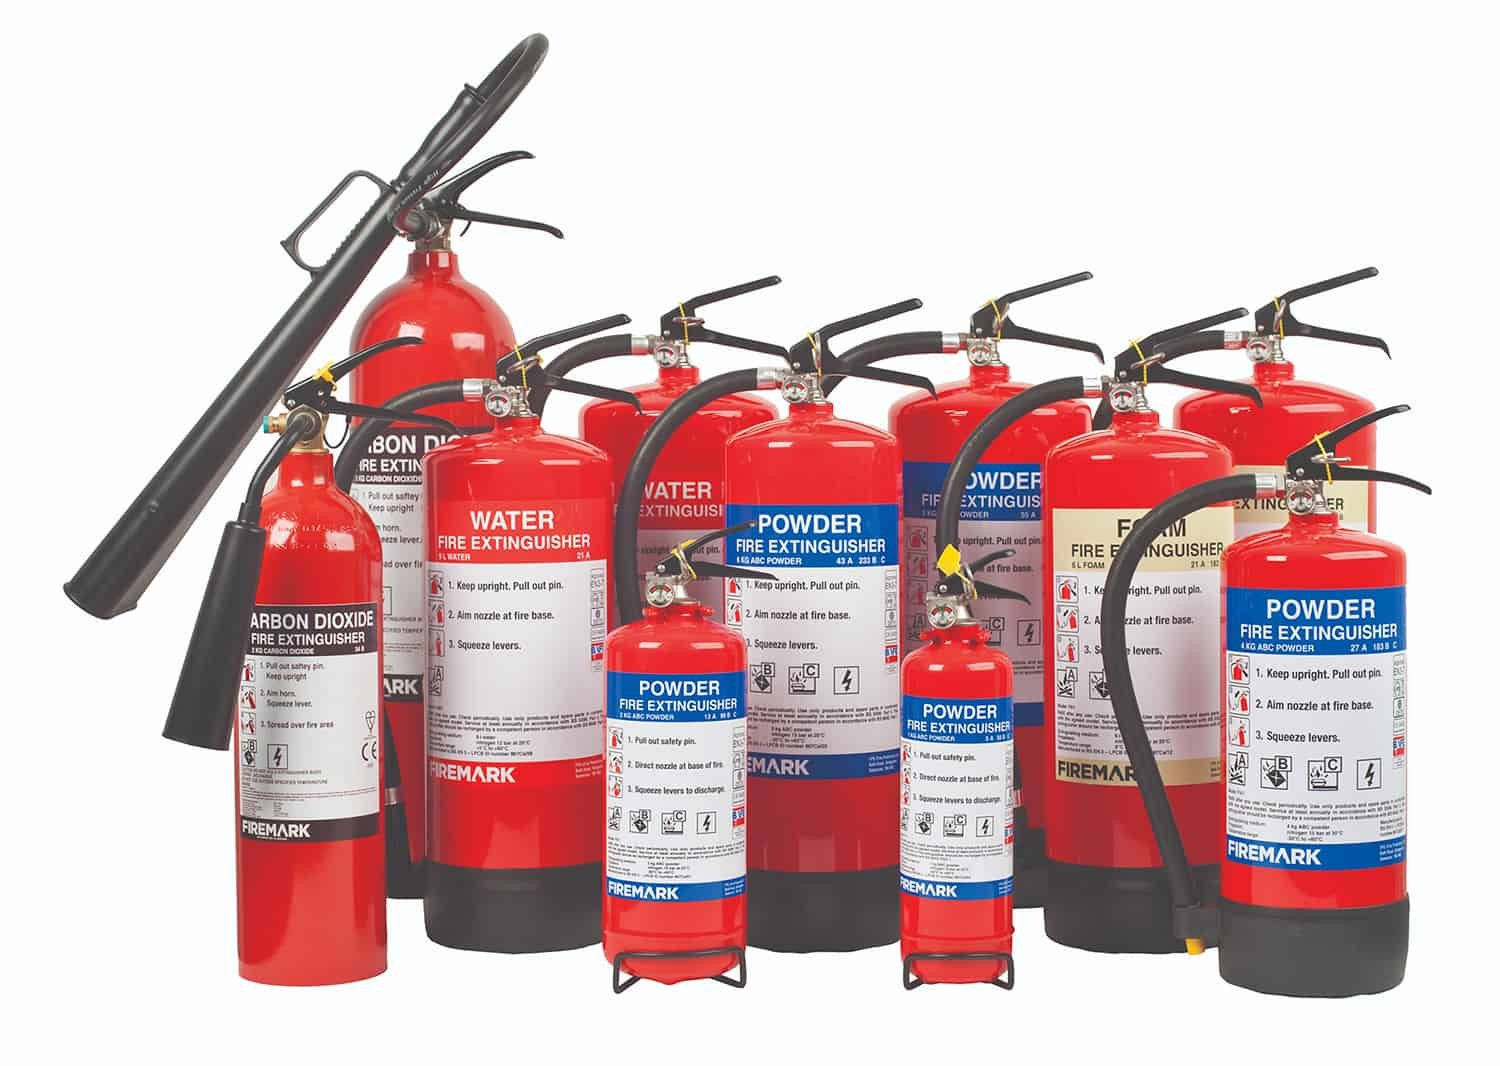 CO2 - Fire extinguisher